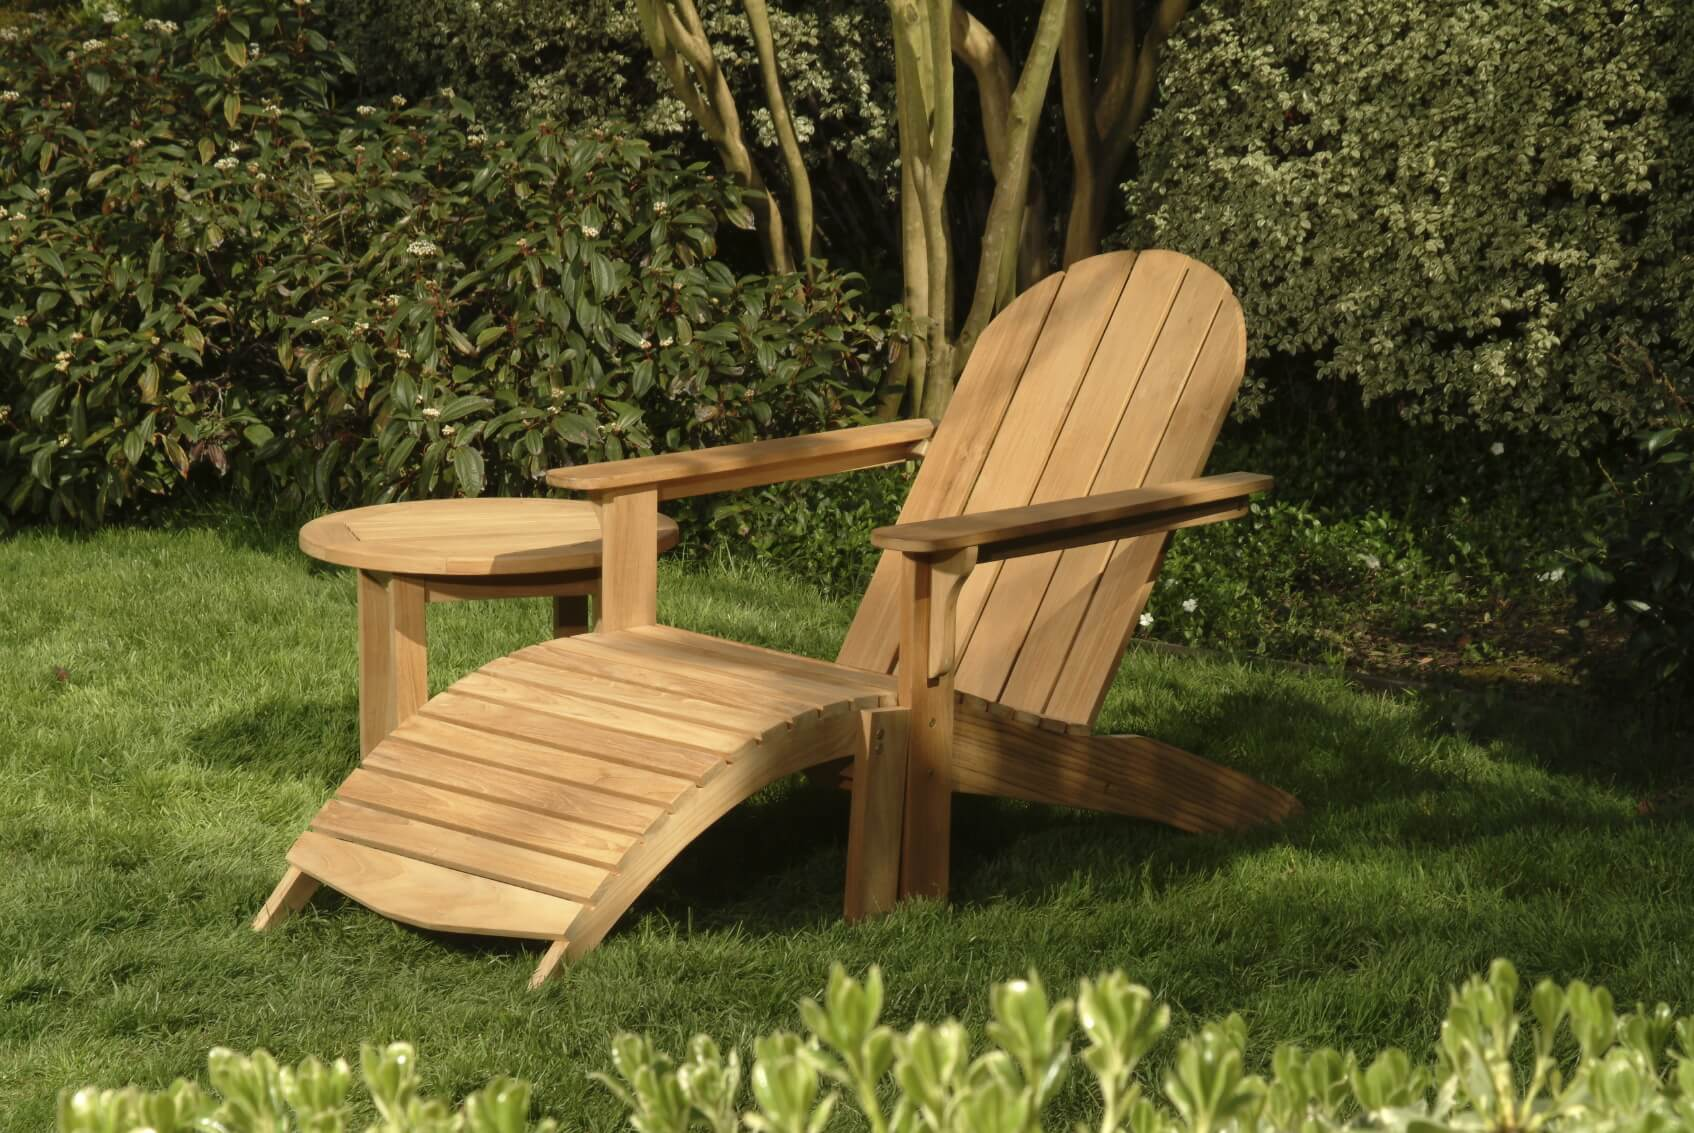 Some adirondack chairs have more of a leg rest than others Here we see one that has a long curved leg rest. In this seat you will be nearly laying down.